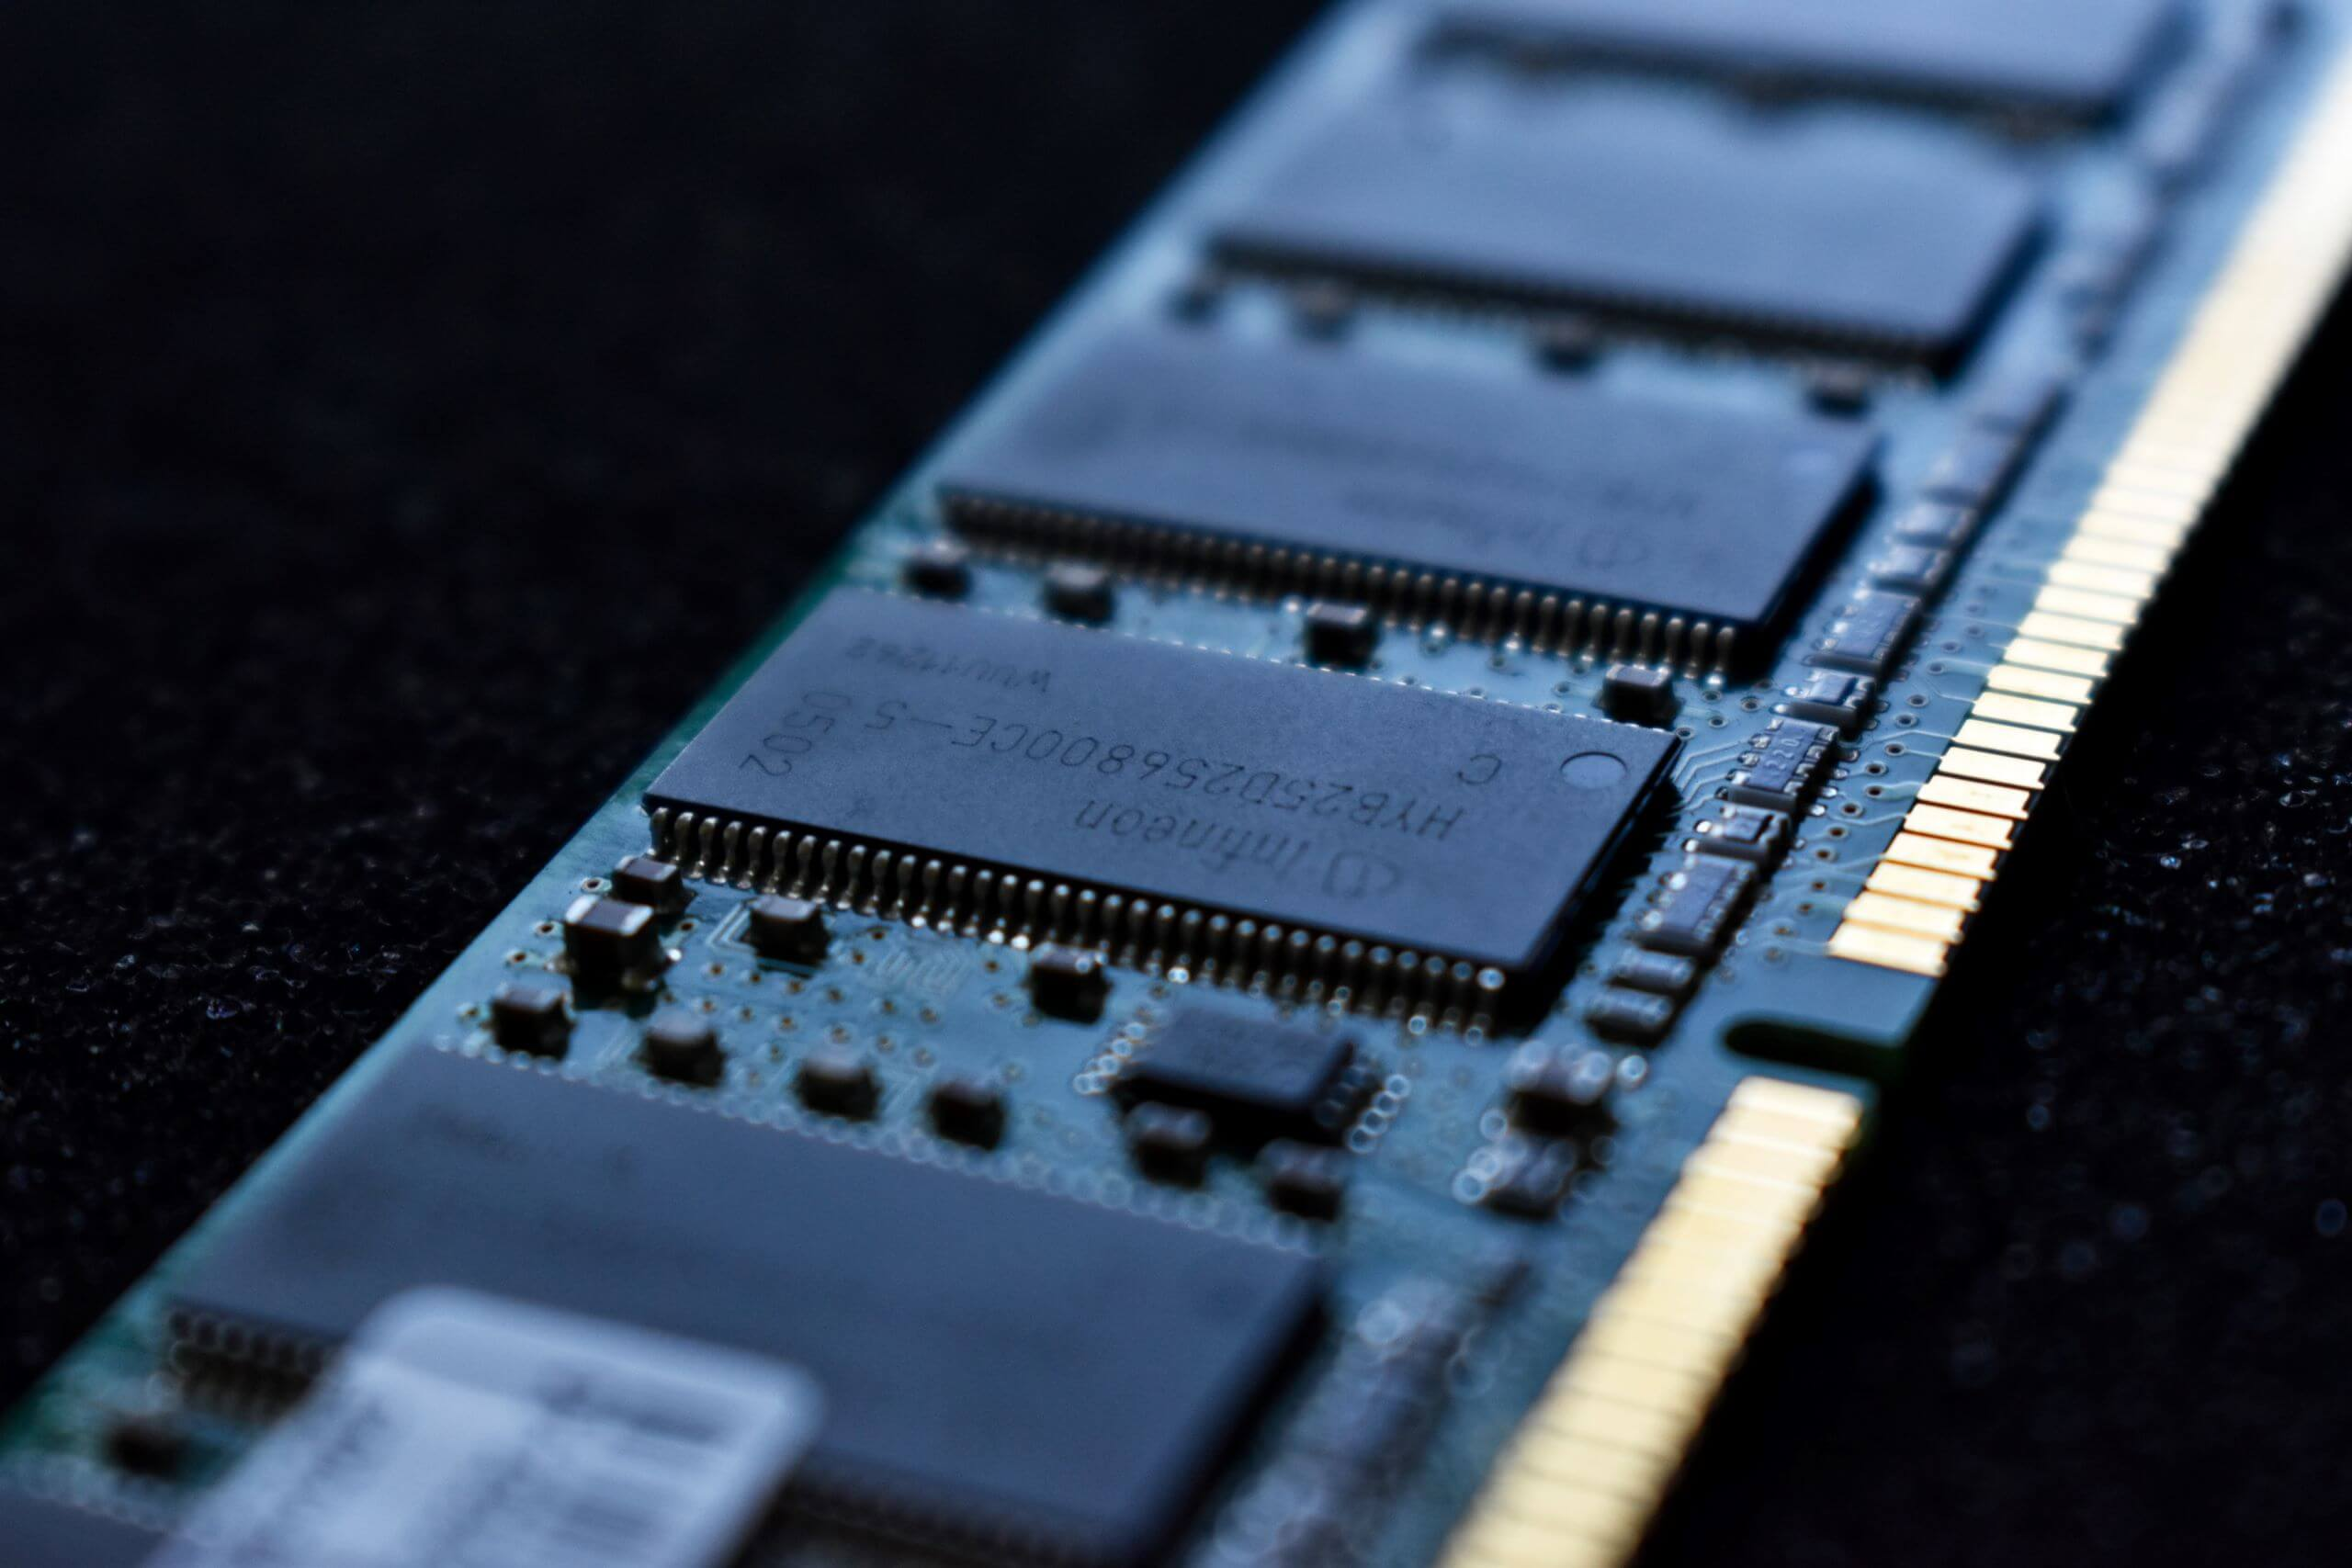 Internal AMD roadmap shows DDR5 and native USB 4.0 support arriving in 2022